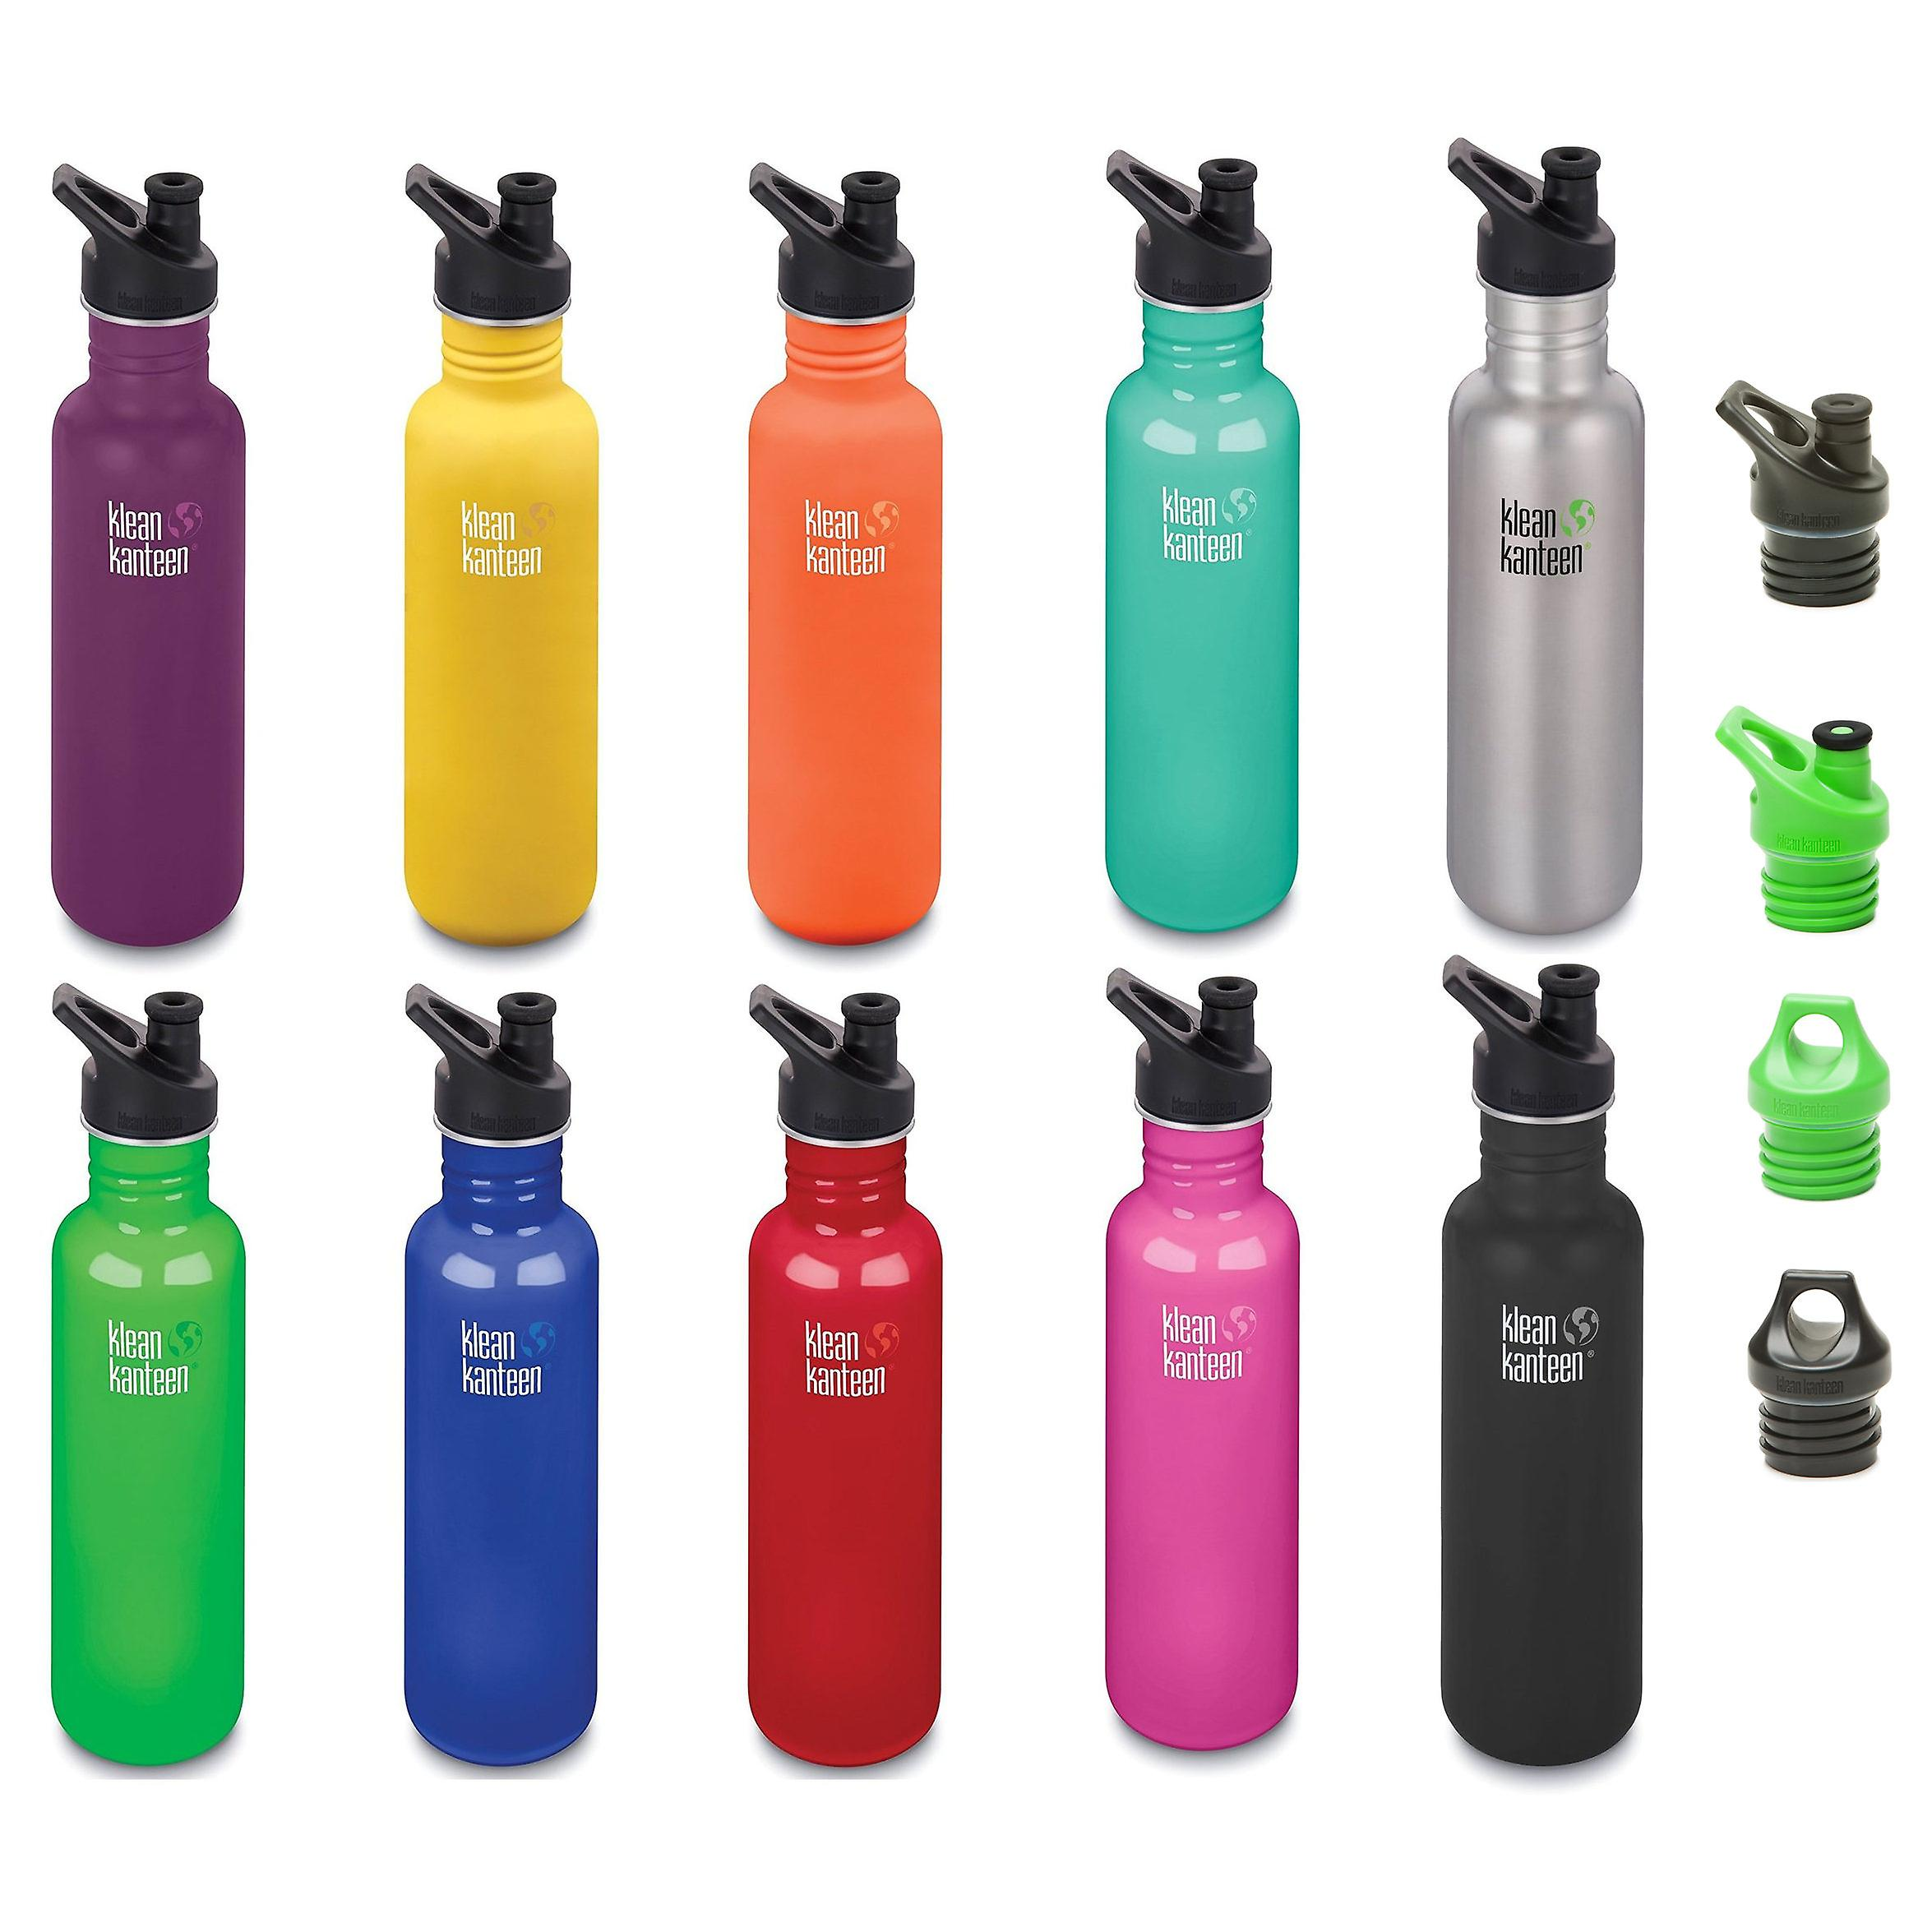 ce21bc6852 Klean Kanteen Classic 27oz Stainless Steel drinks bottle - New Klean Coat  finish